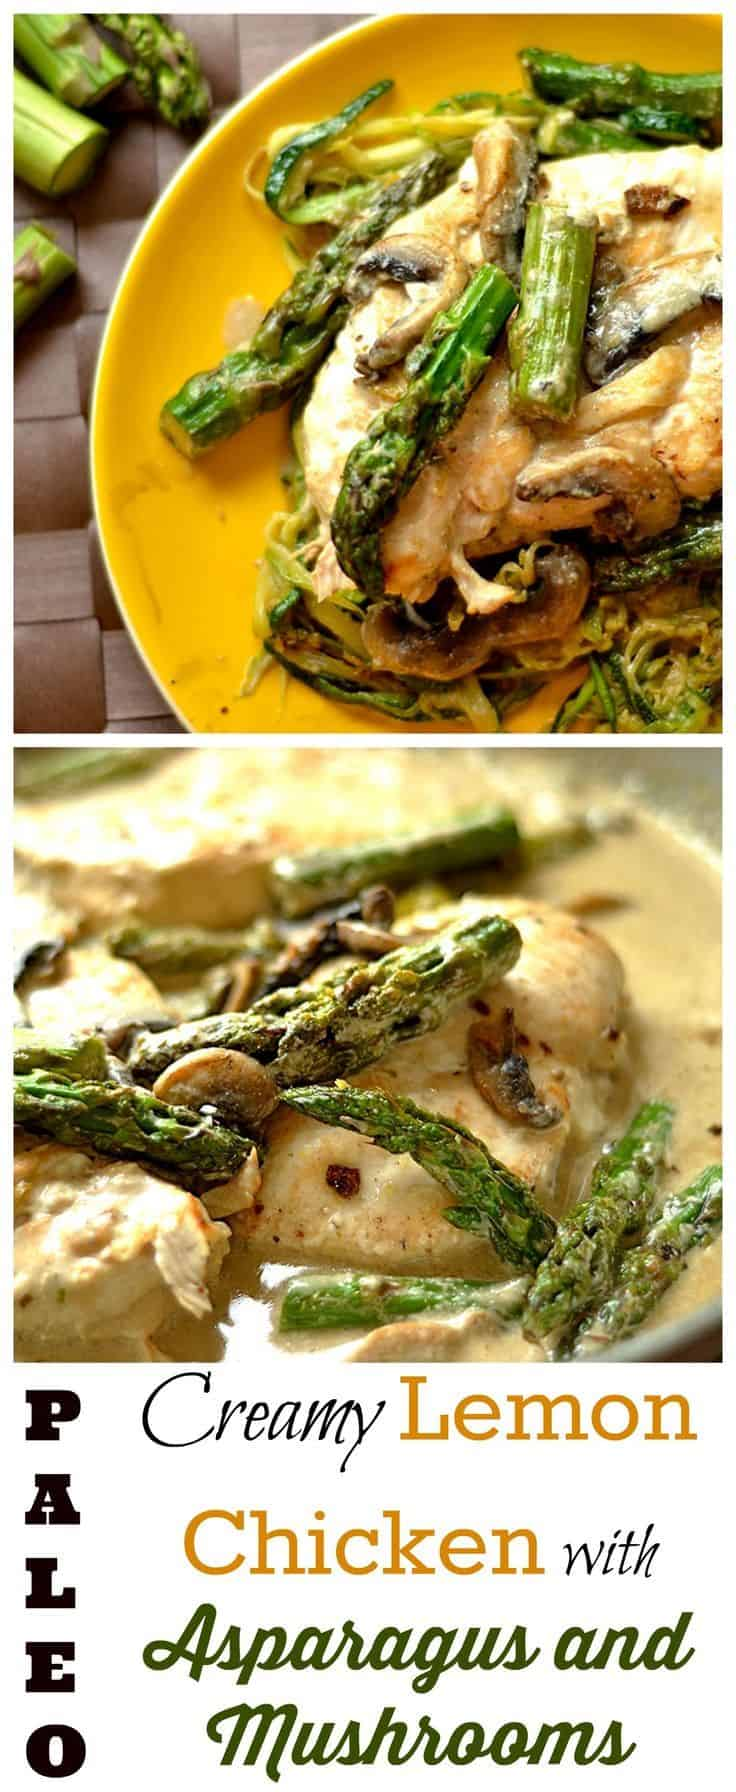 Creamy lemon chicken with mushrooms and asparagus